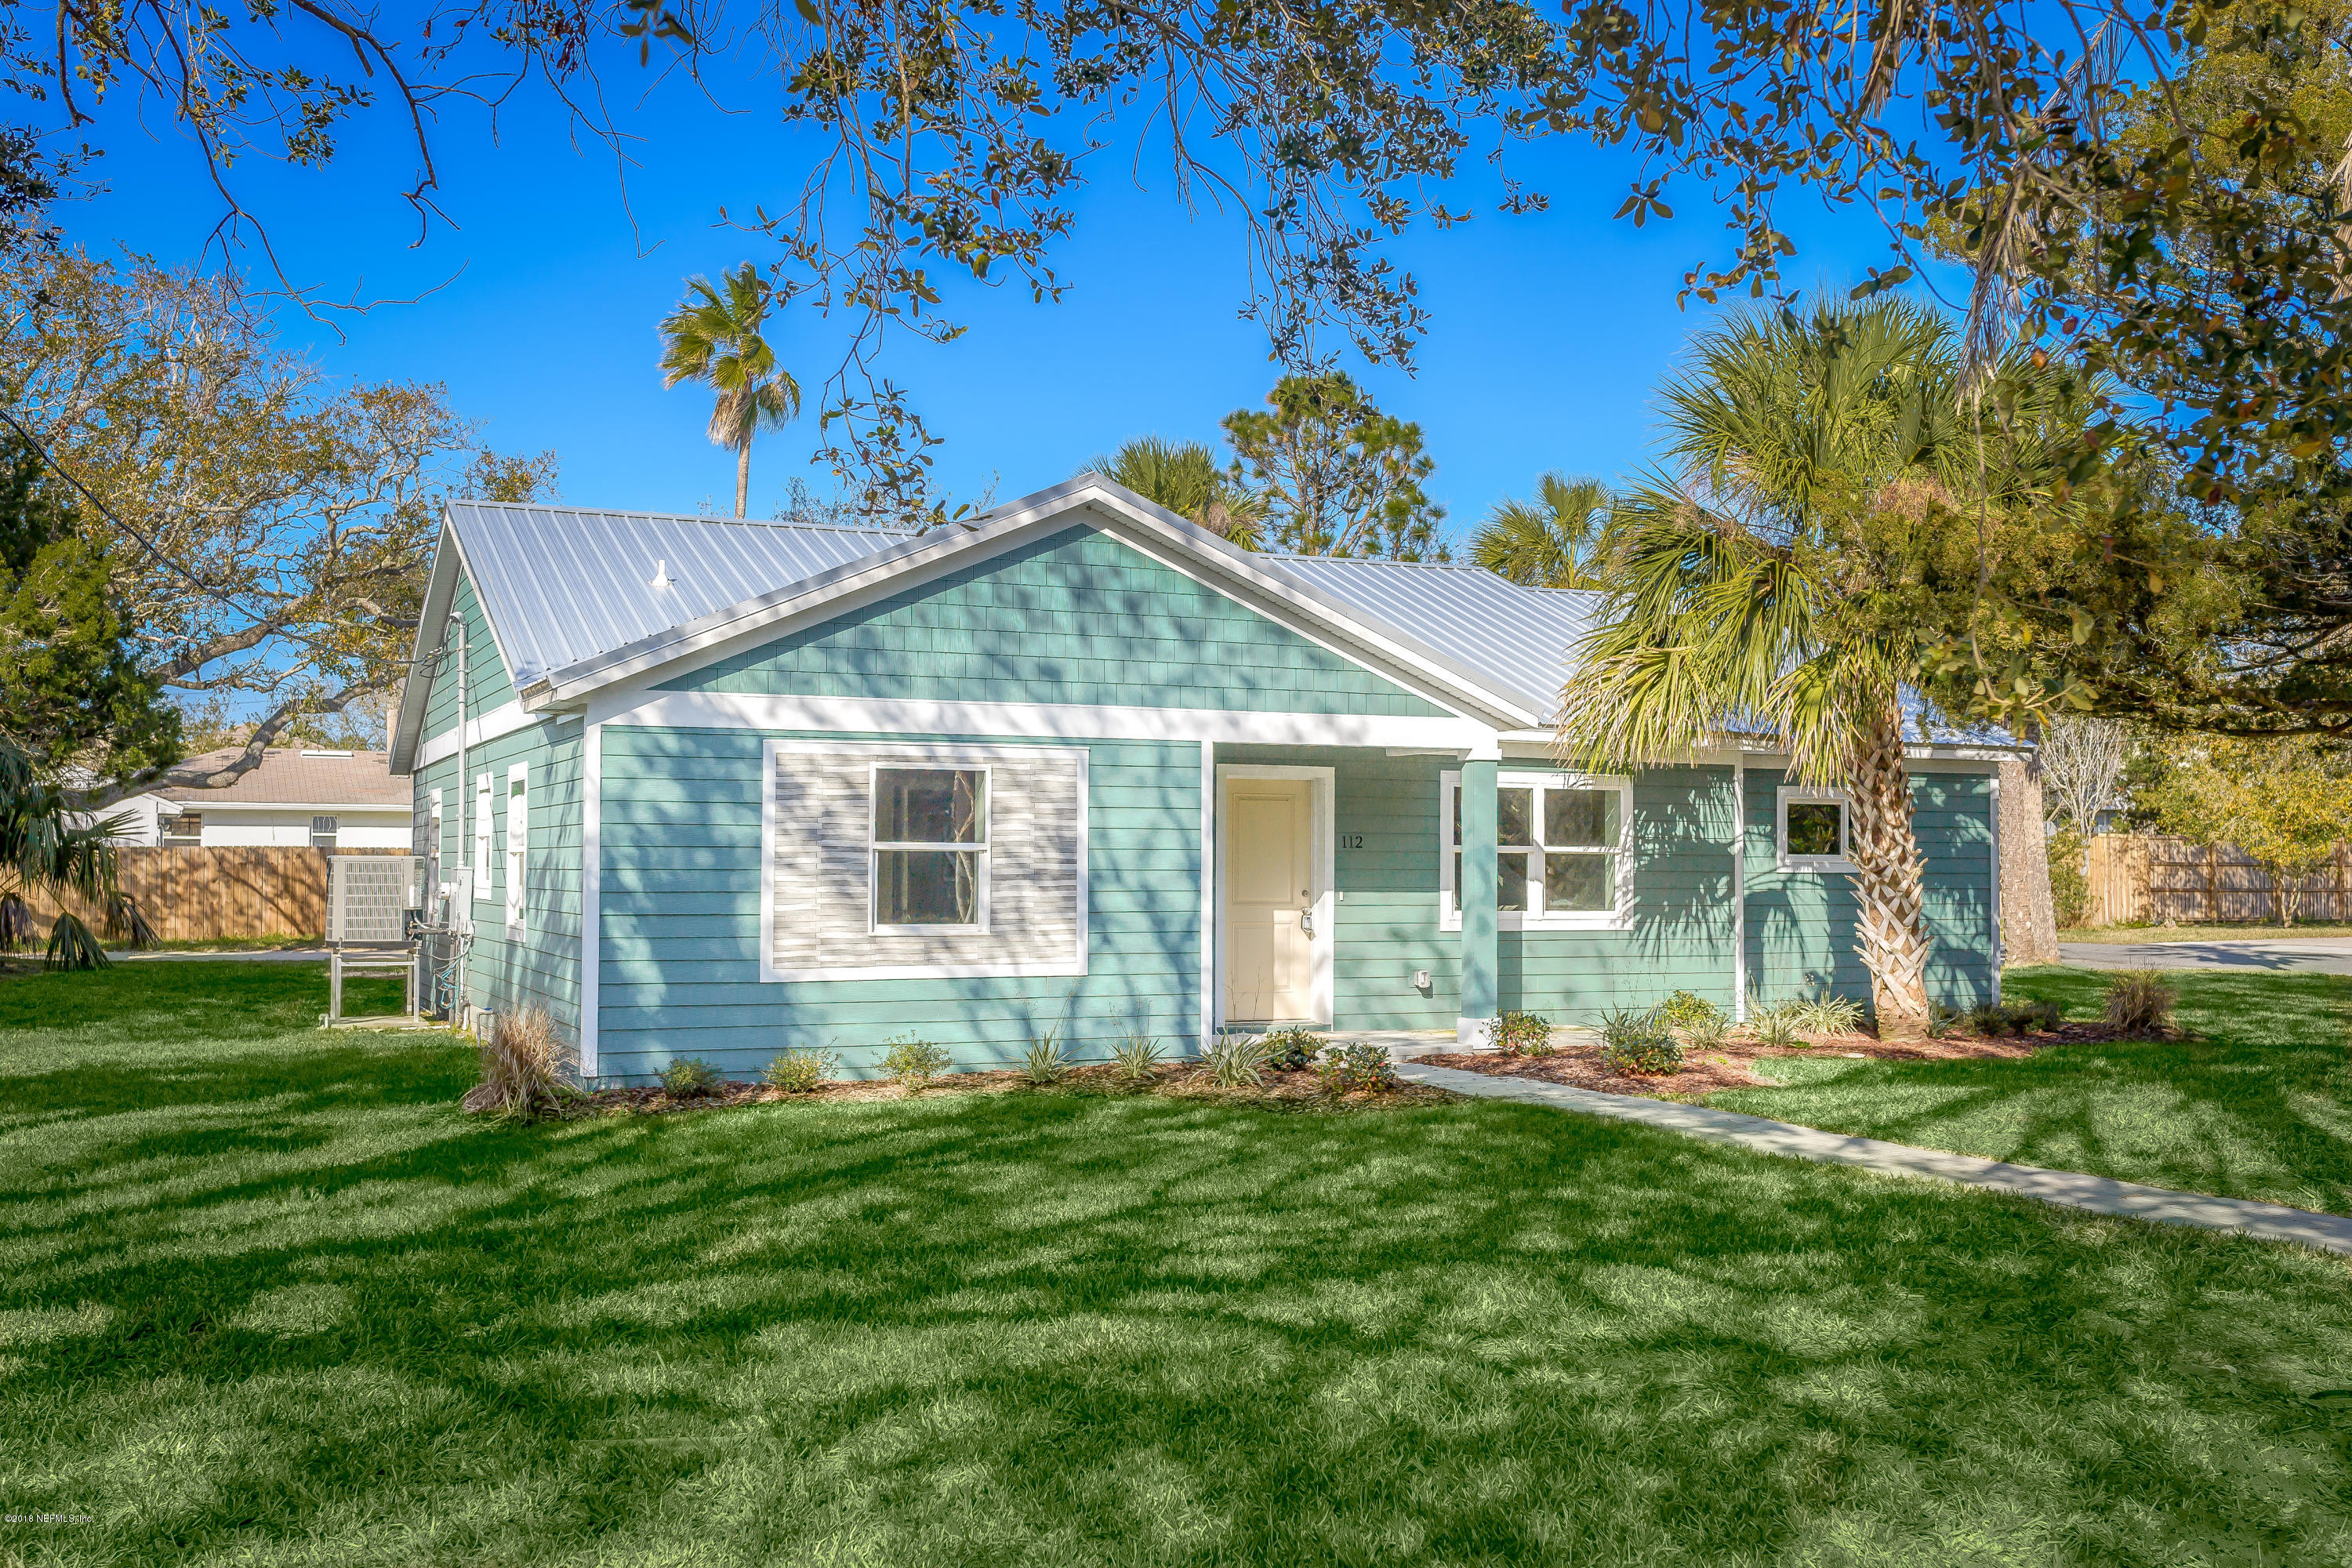 112 ZORATOA, ST AUGUSTINE, FLORIDA 32080, 3 Bedrooms Bedrooms, ,2 BathroomsBathrooms,Residential - single family,For sale,ZORATOA,881042